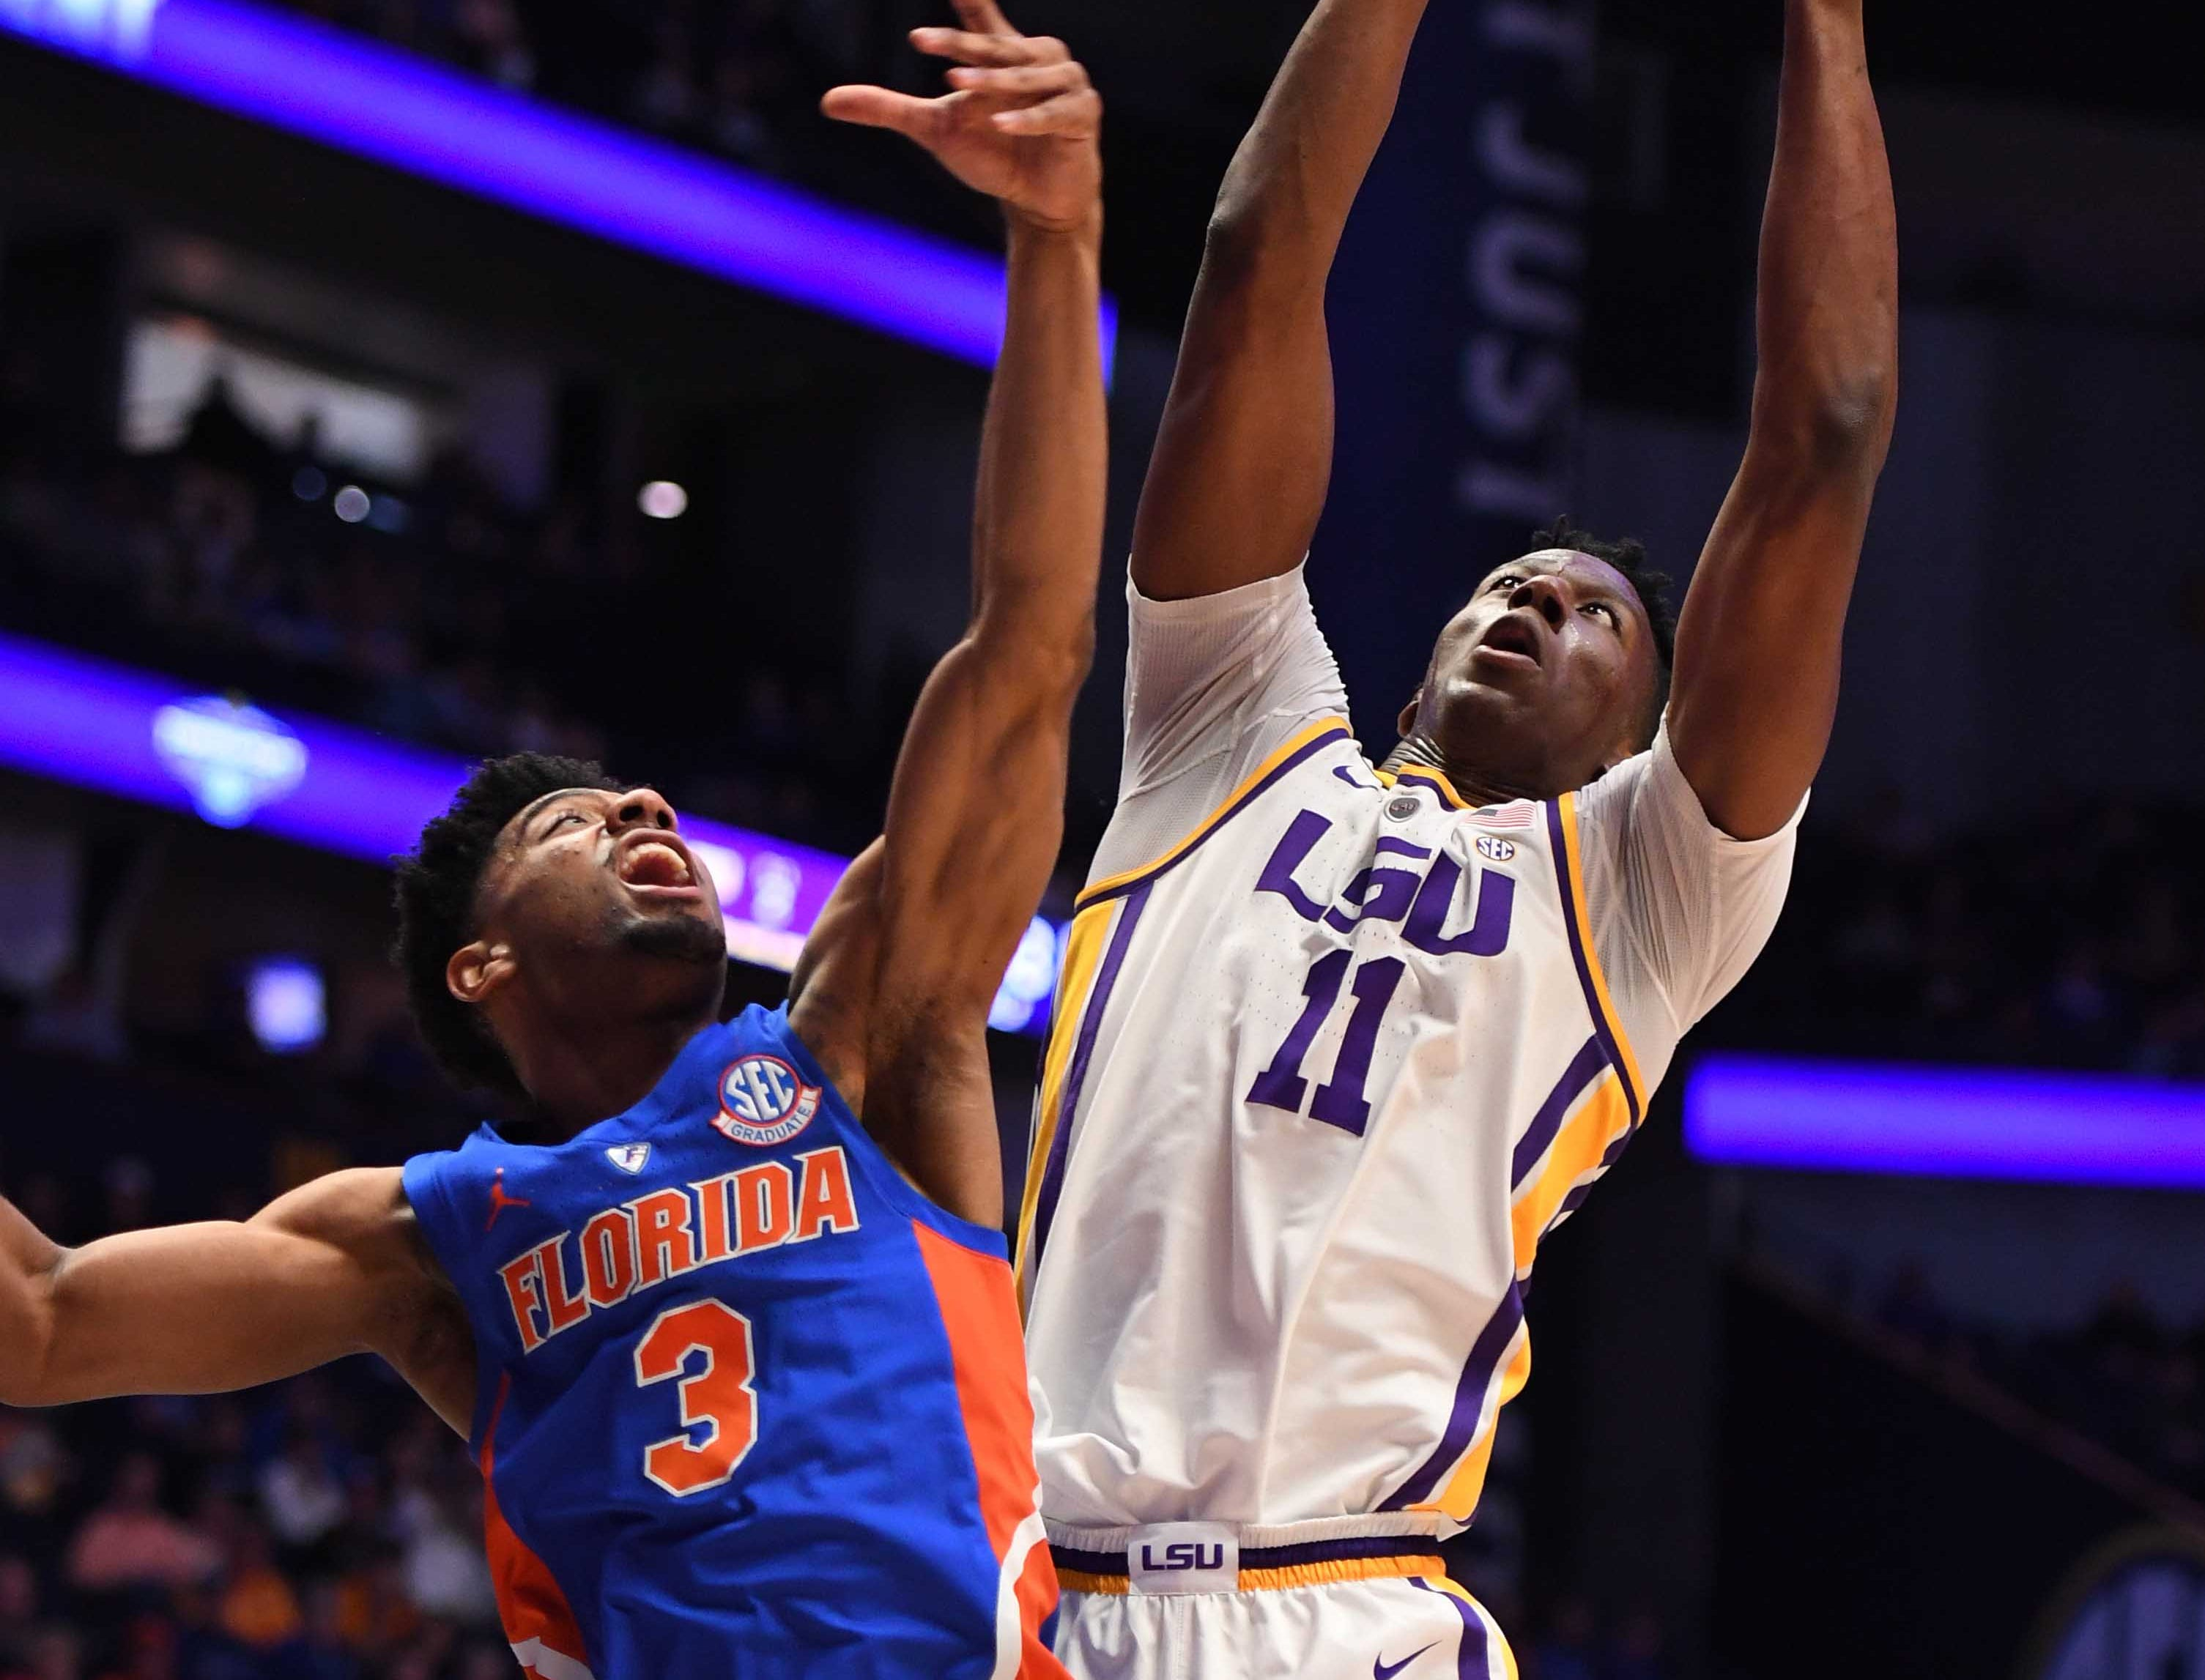 Mar 15, 2019; Nashville, TN, USA; LSU Tigers forward Kavell Bigby-Williams (11) grabs a rebound over Florida Gators guard Jalen Hudson (3) during the first half of the SEC conference tournament at Bridgestone Arena. Mandatory Credit: Christopher Hanewinckel-USA TODAY Sports